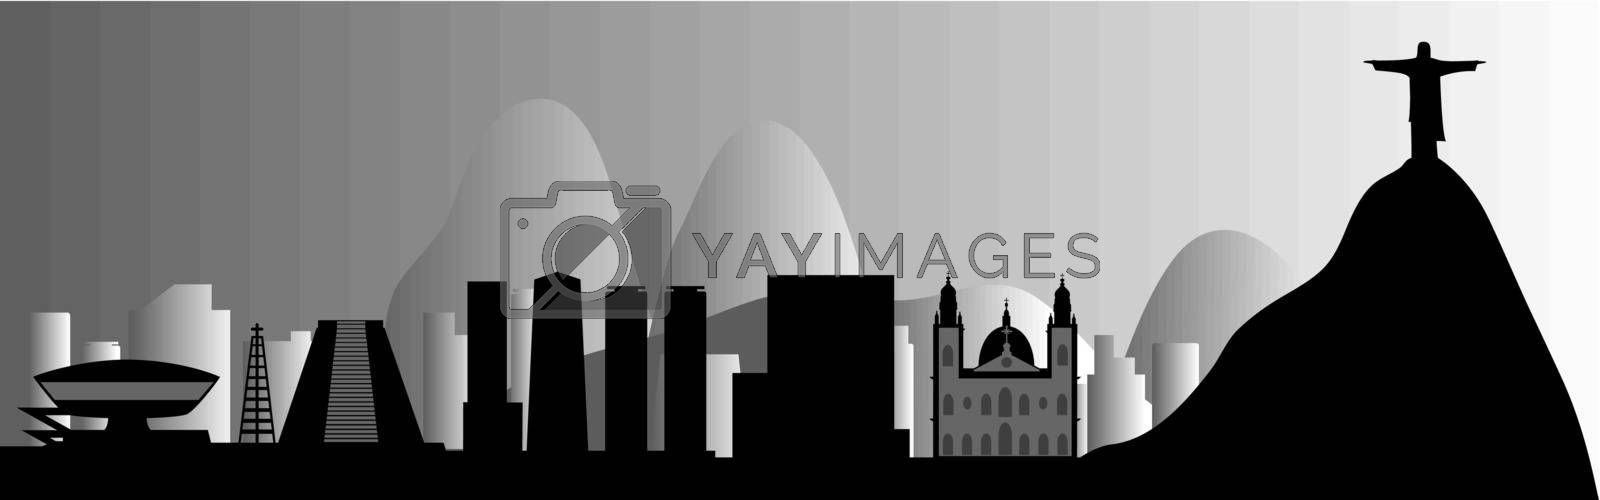 Royalty free image of vector Rio de Janeiro skyline by Mibuch